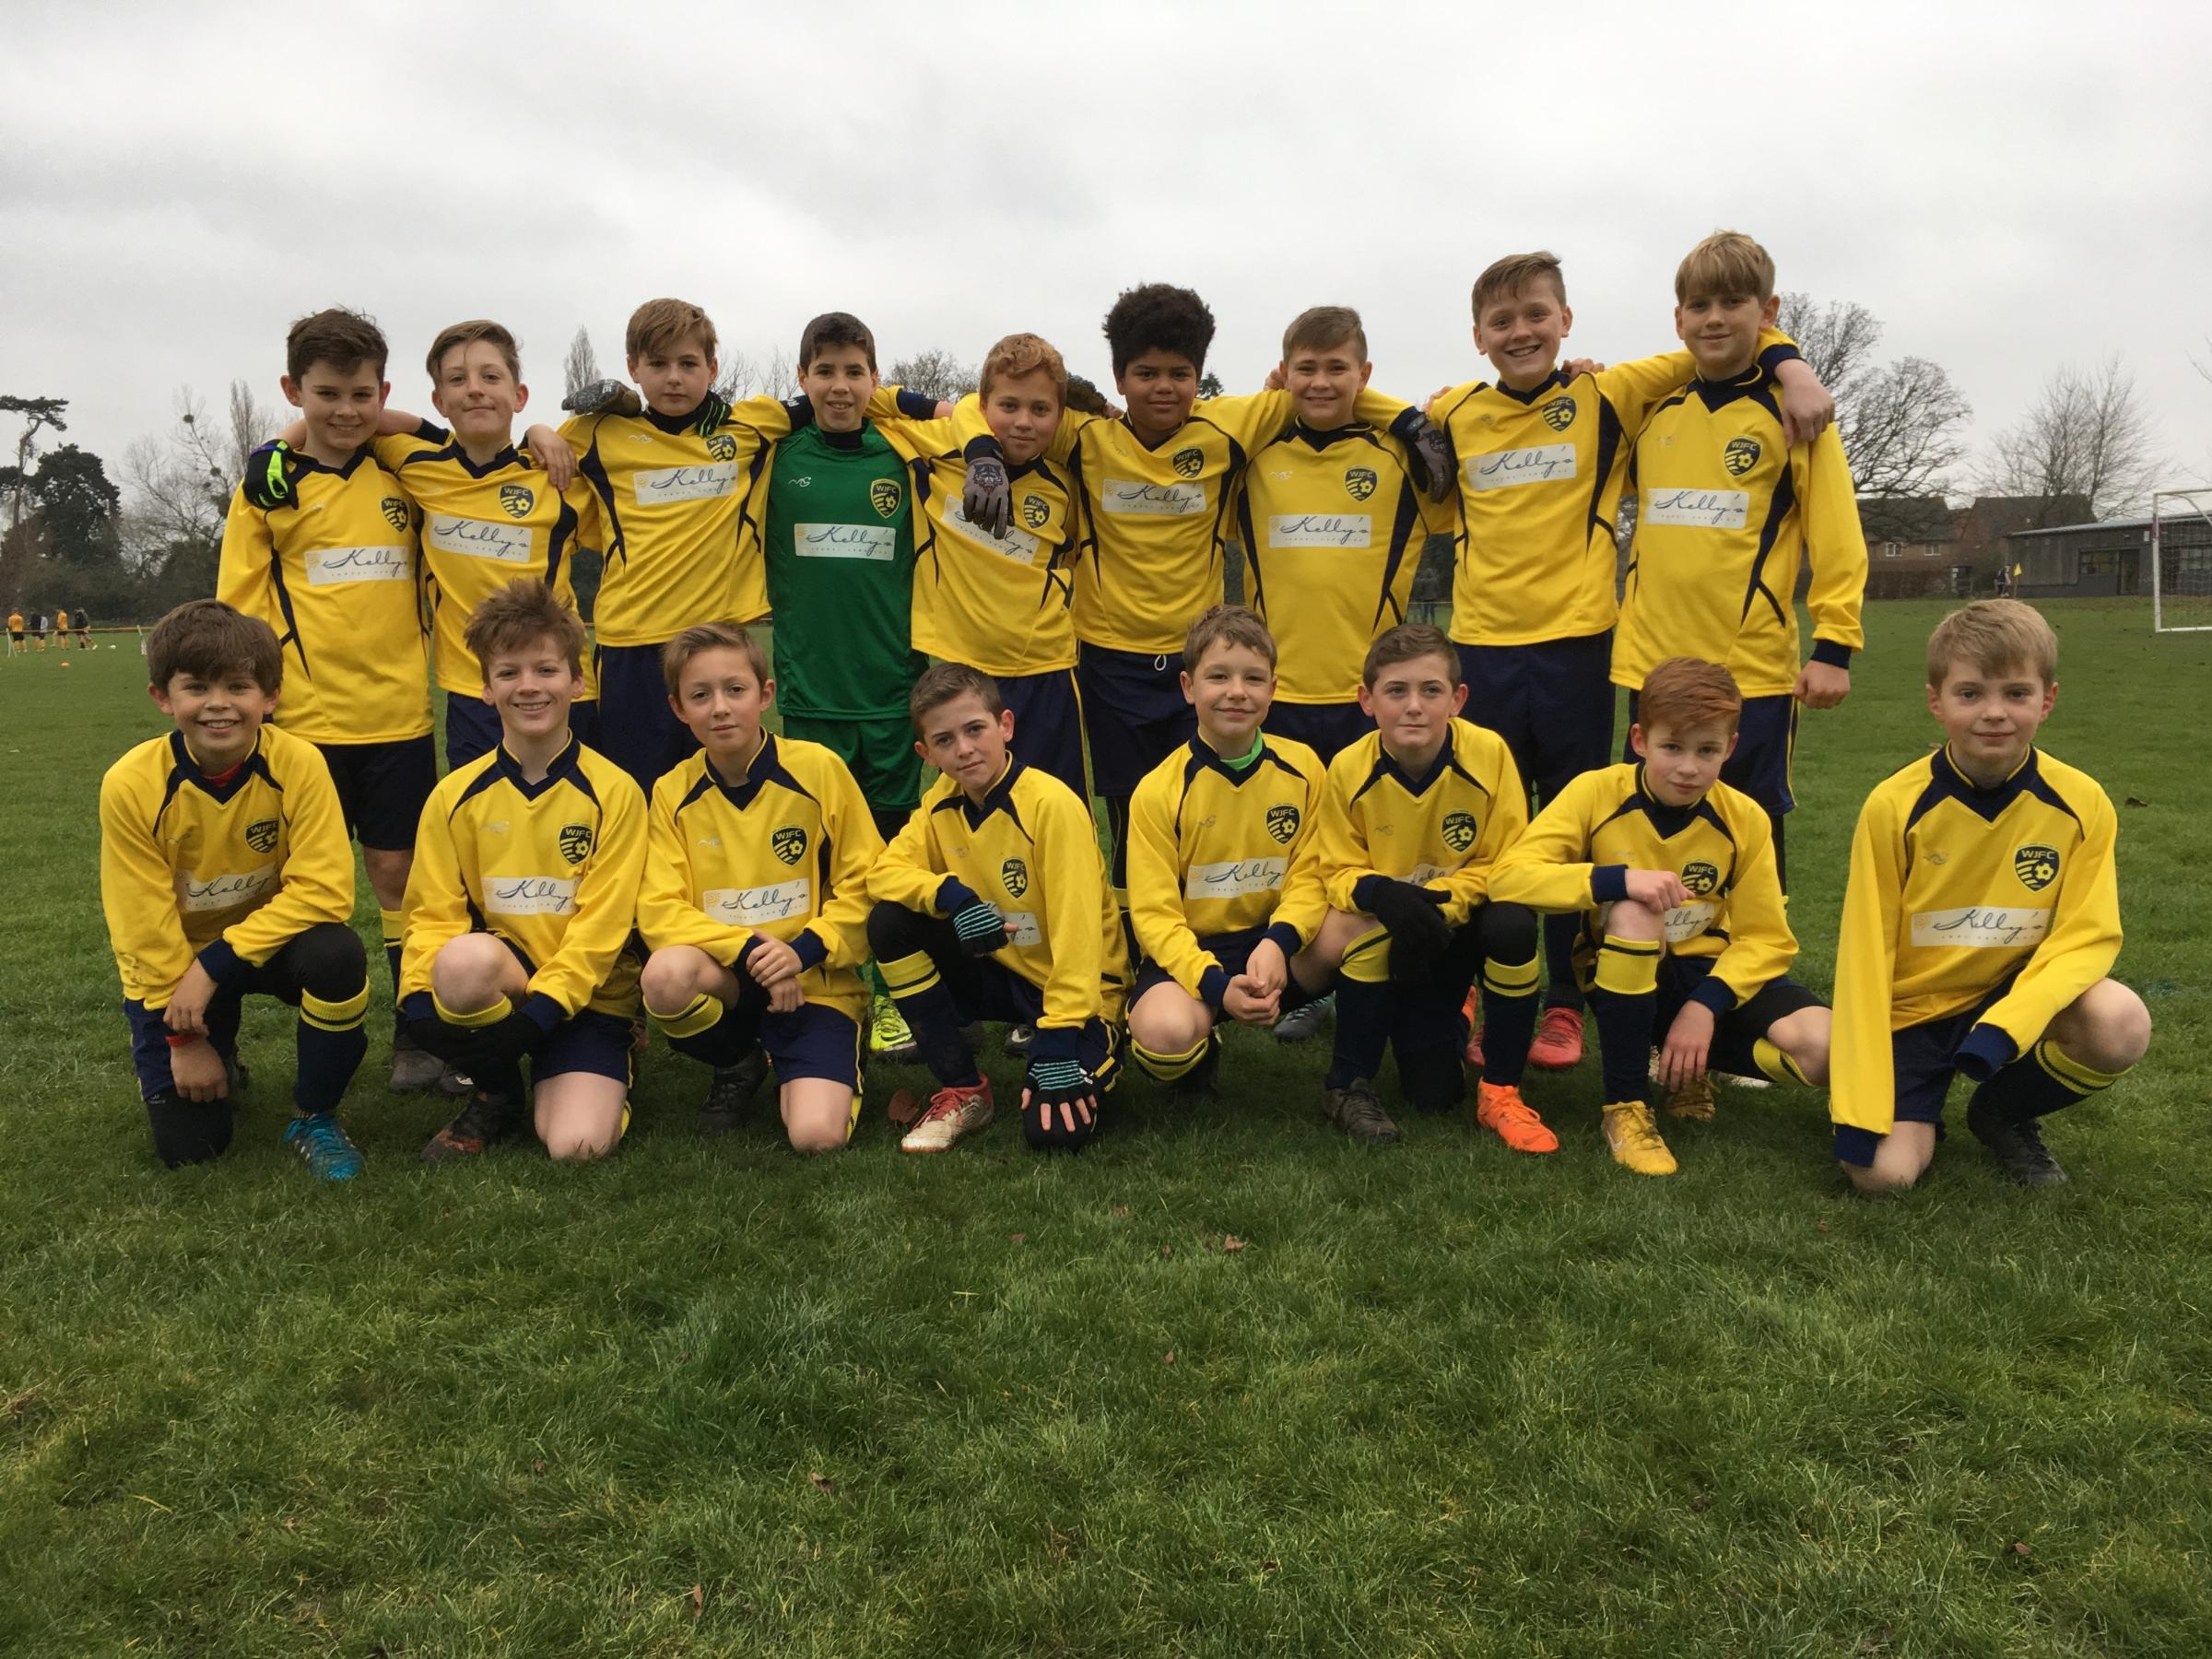 Welland Juniors Lions under 12s face the camera